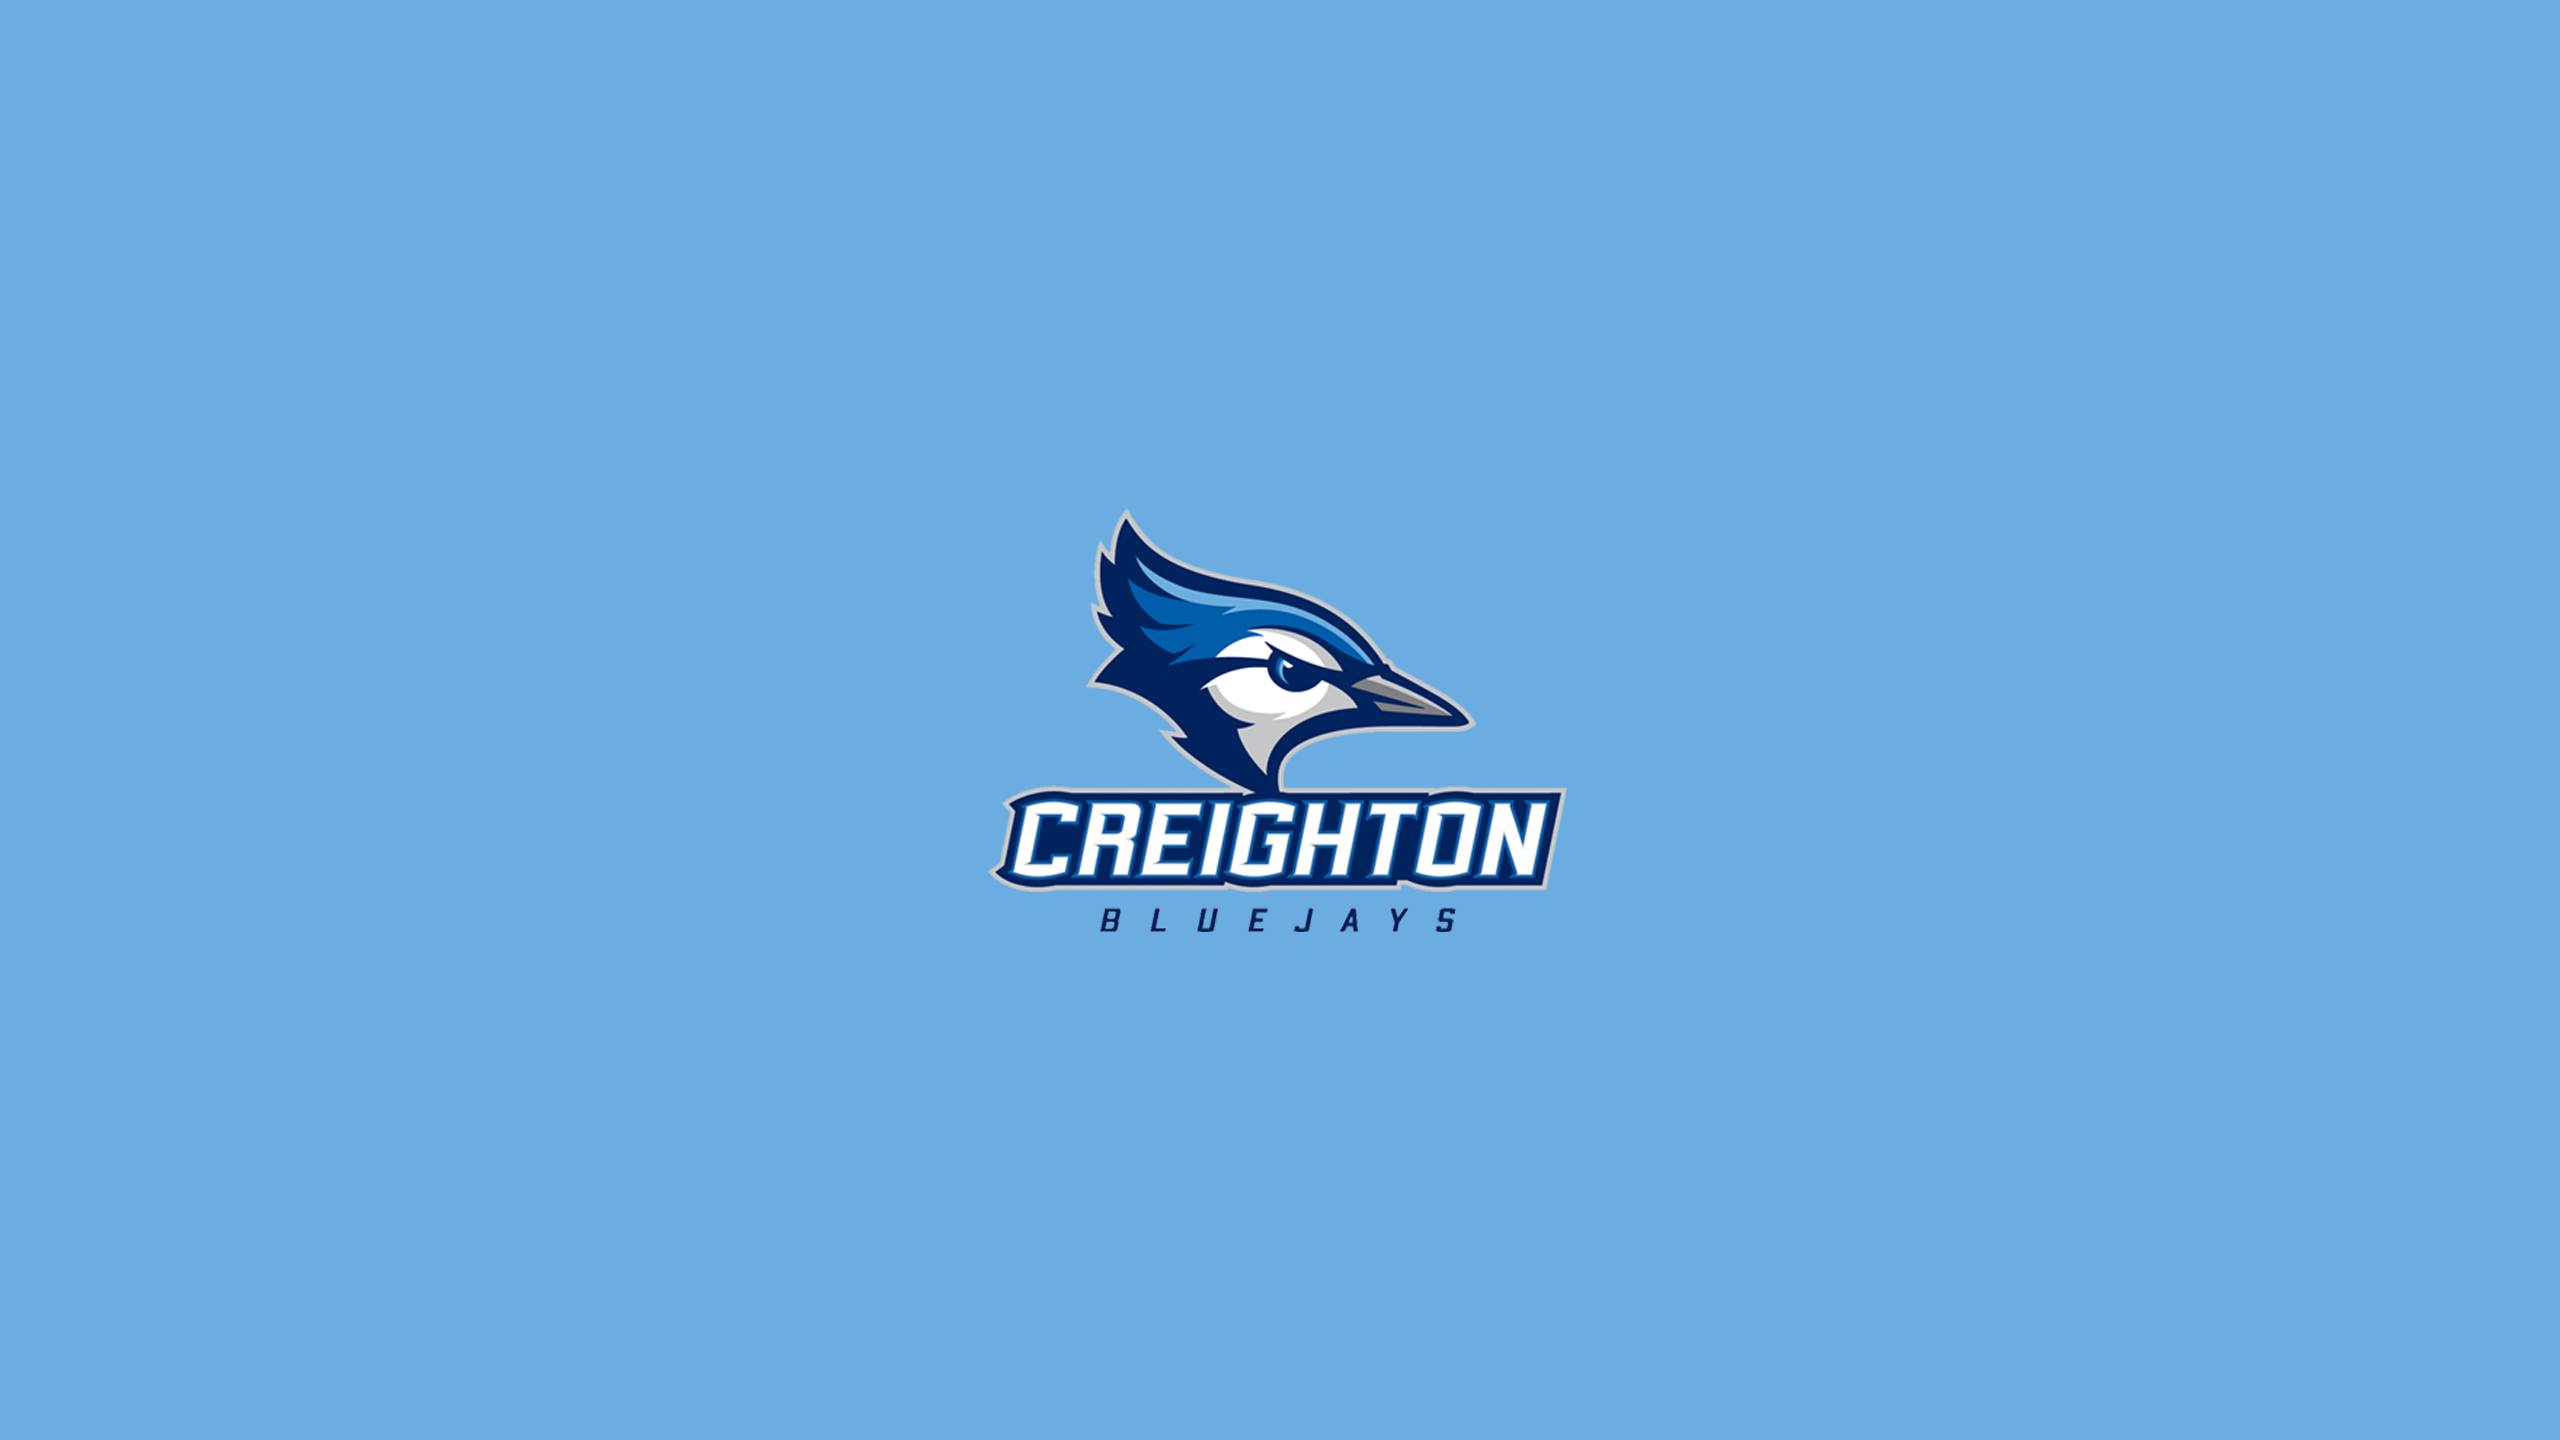 Creighton University Blue Jays